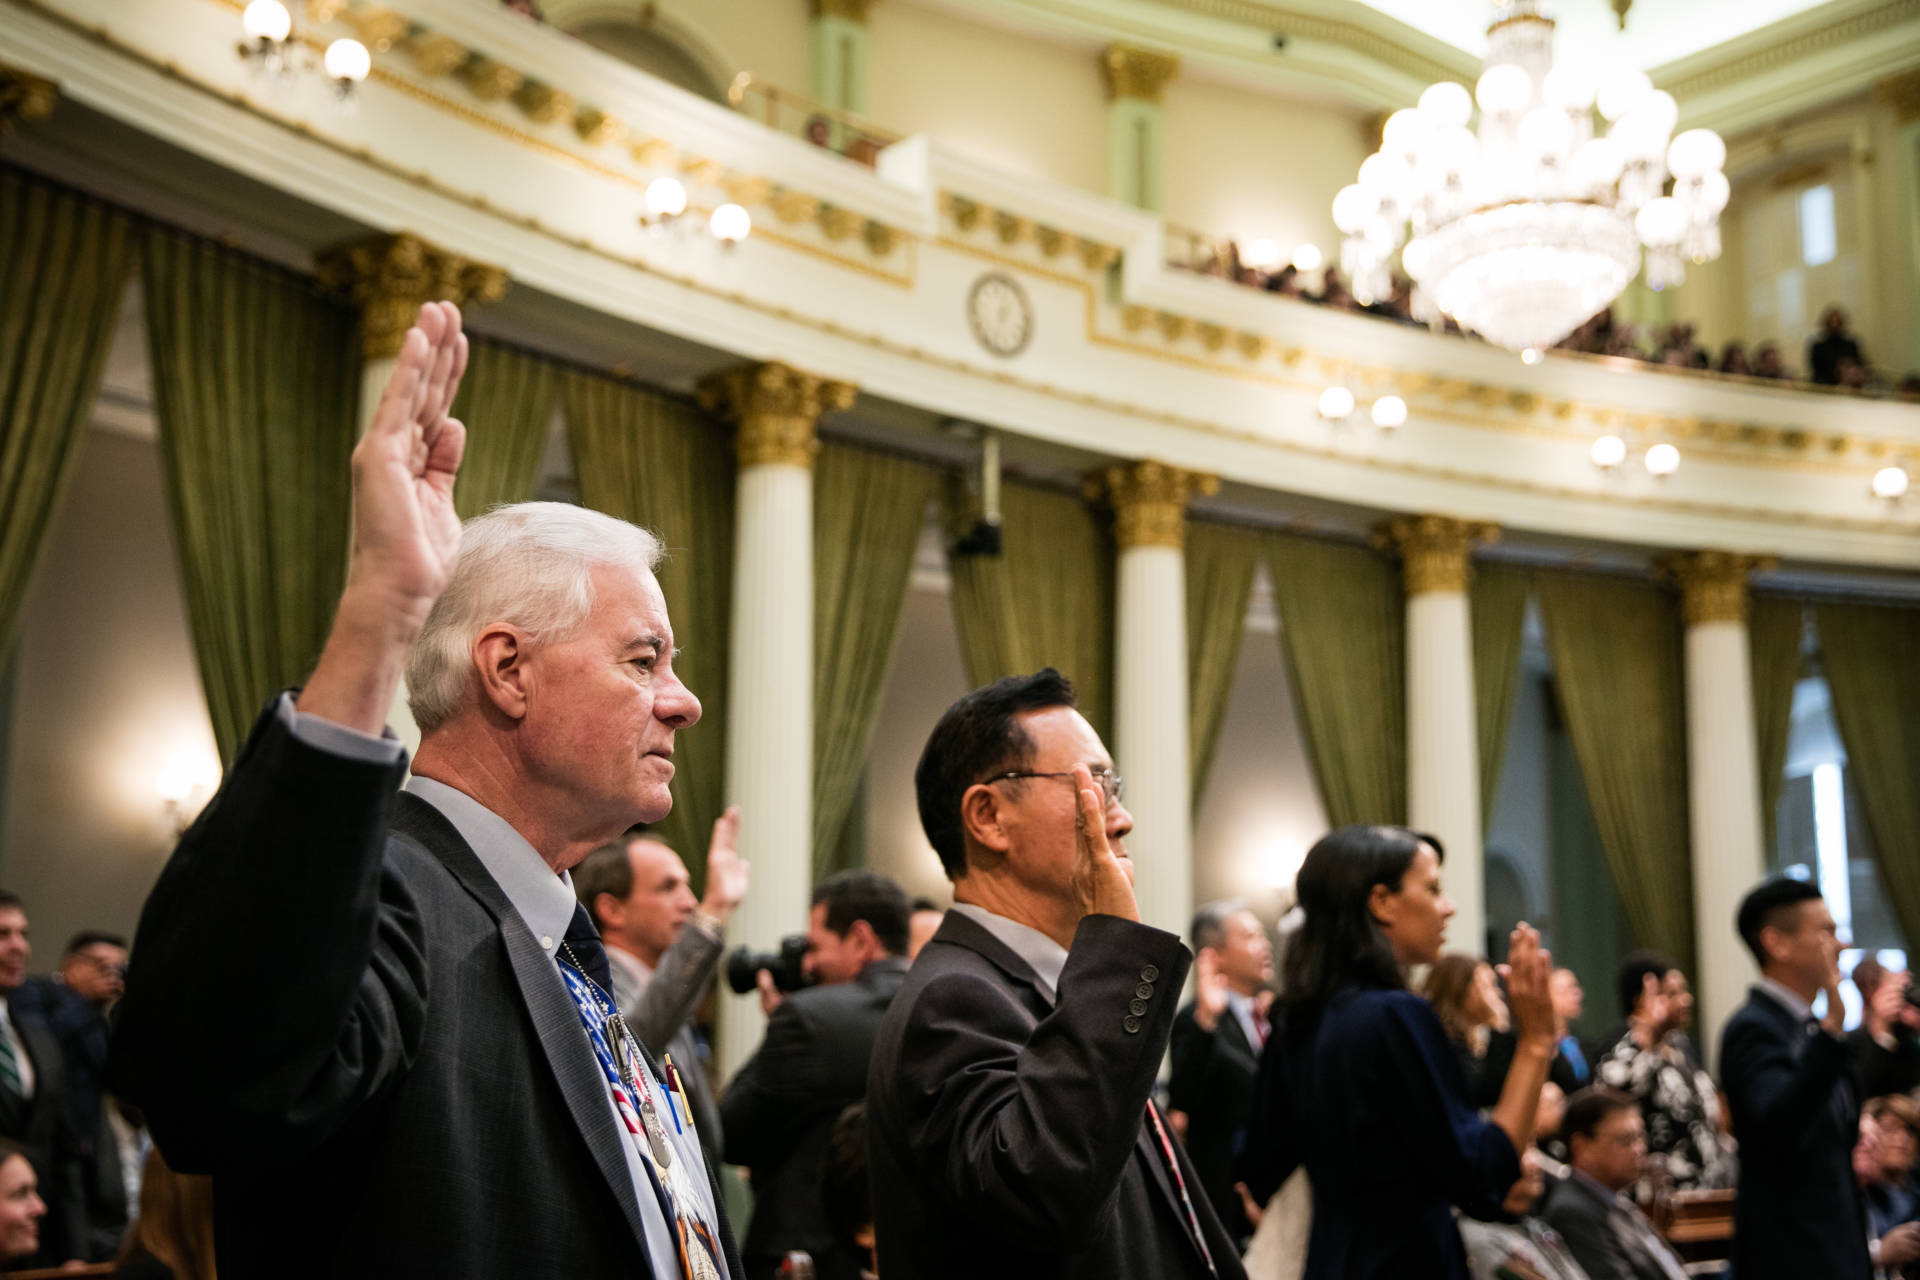 Republican Assemblyman Randy Voepel takes the oath of office in the California Assembly, Dec. 3, 2018, at the State Capitol in Sacramento. California prides itself on diversity, but in many ways the Legislature looks more like the California of 30 years ago than the California of today.  Max Whittaker/CALmatters